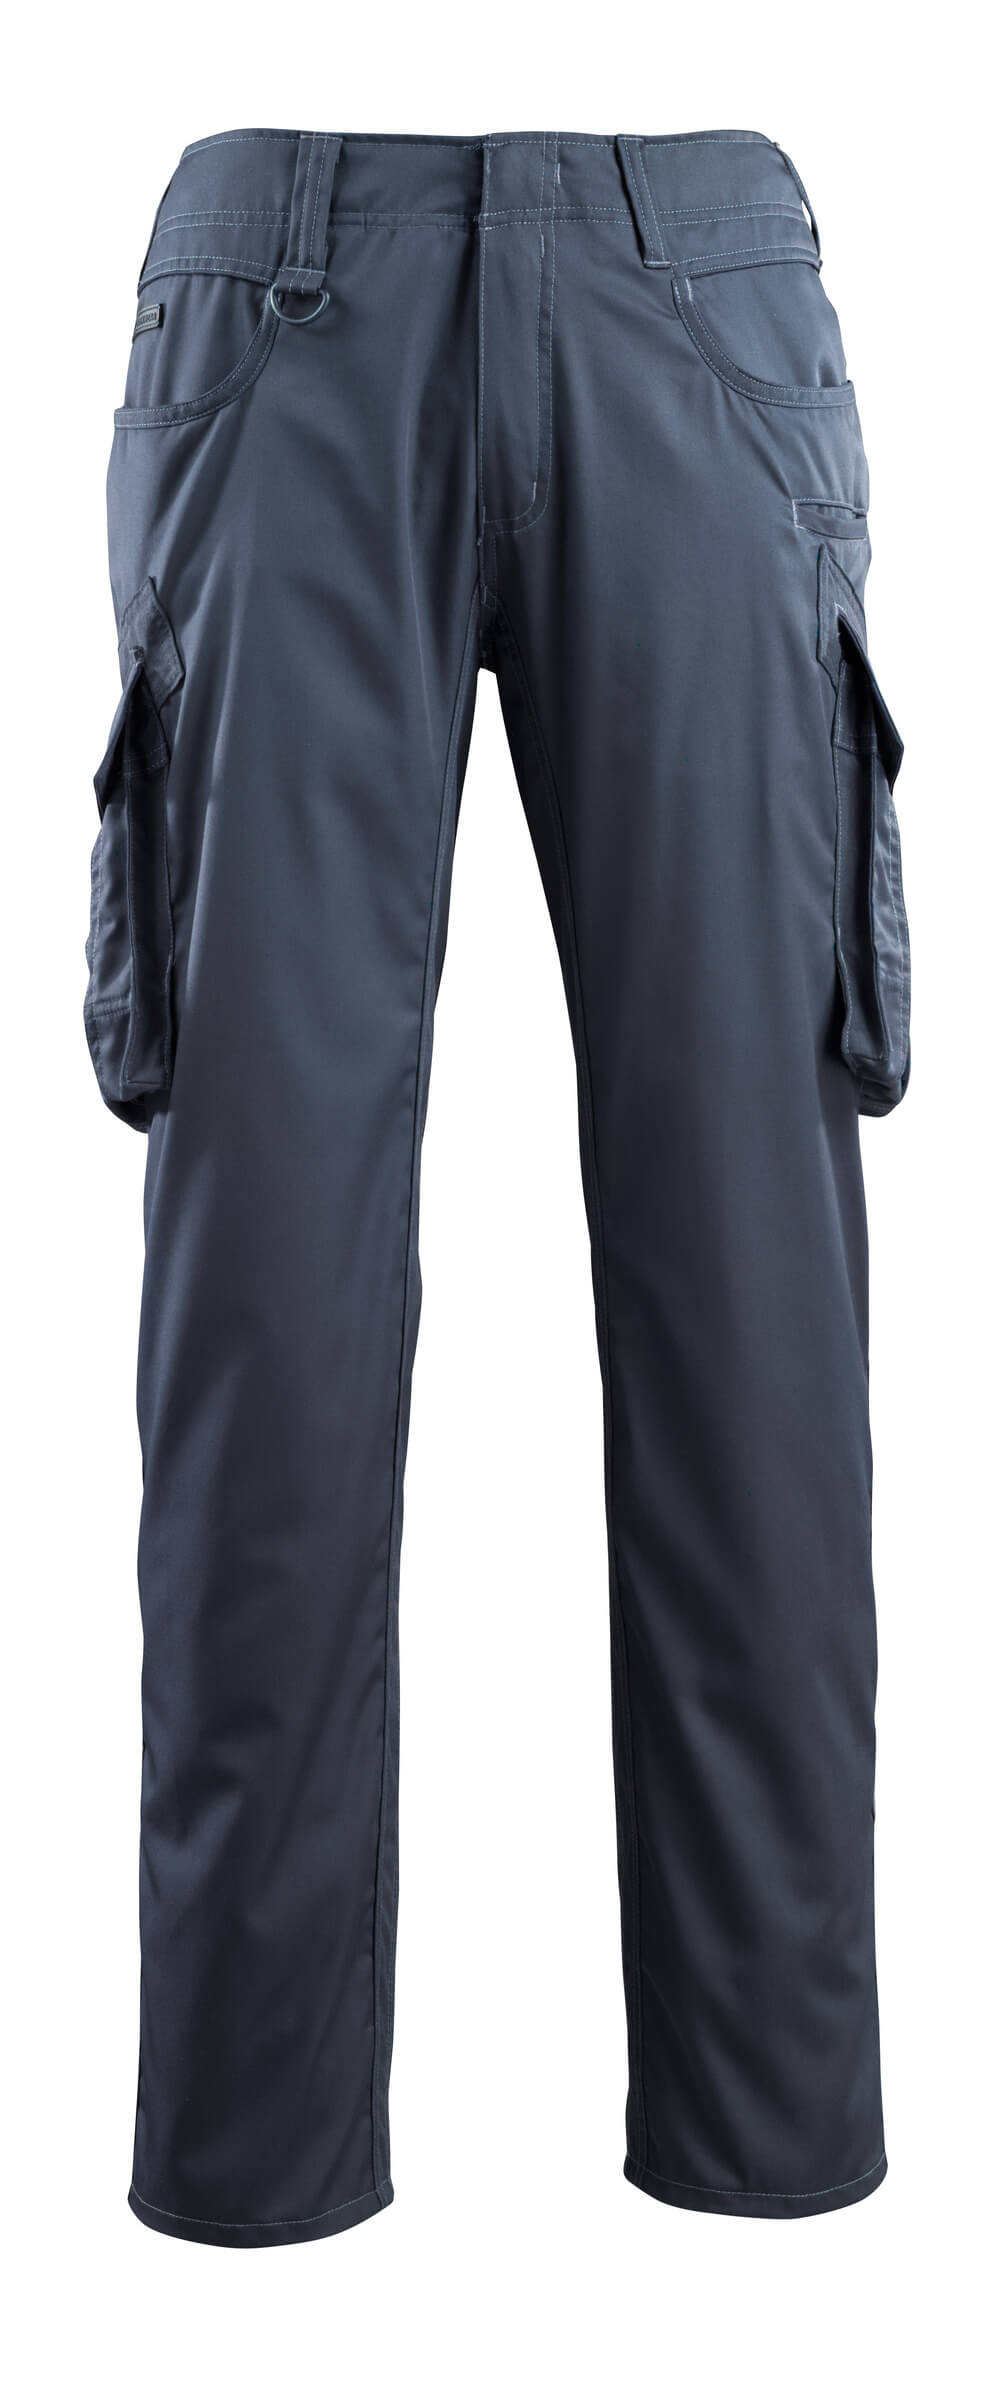 16179-230-010 Pants with thigh pockets - dark navy